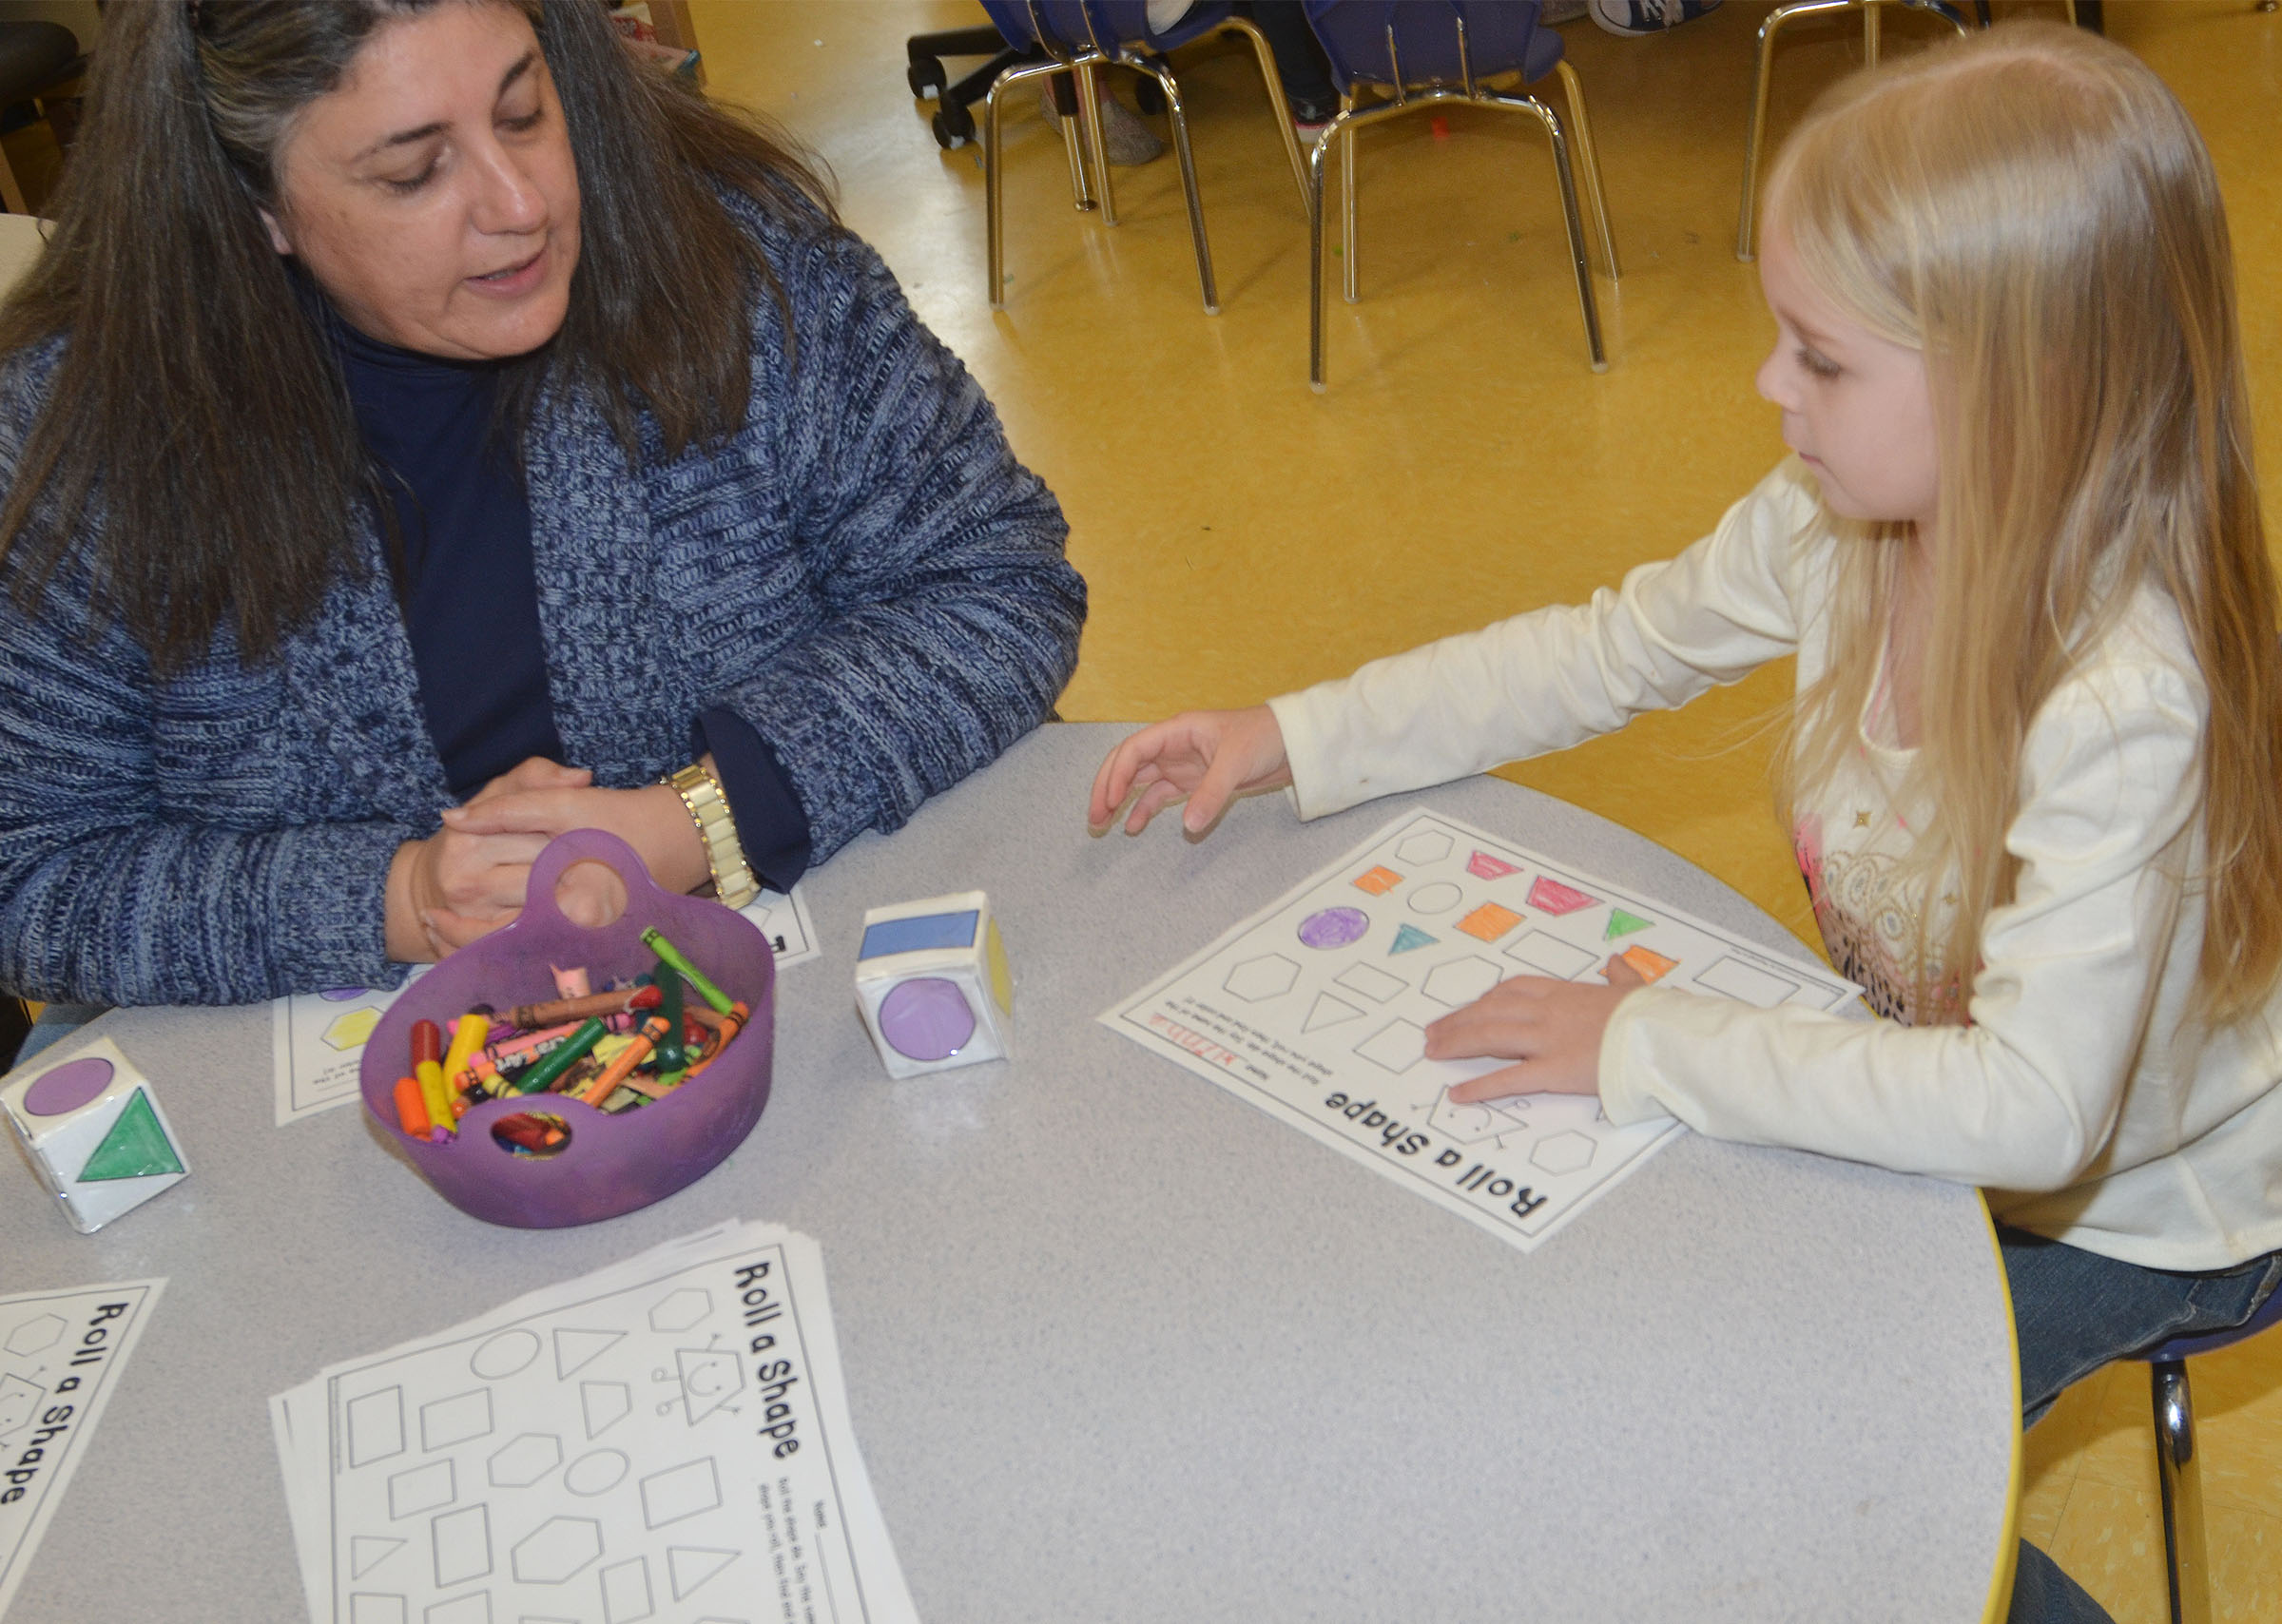 CES preschool teacher Sherry Cowherd plays the Roll a Shape game with Alinna Bray.